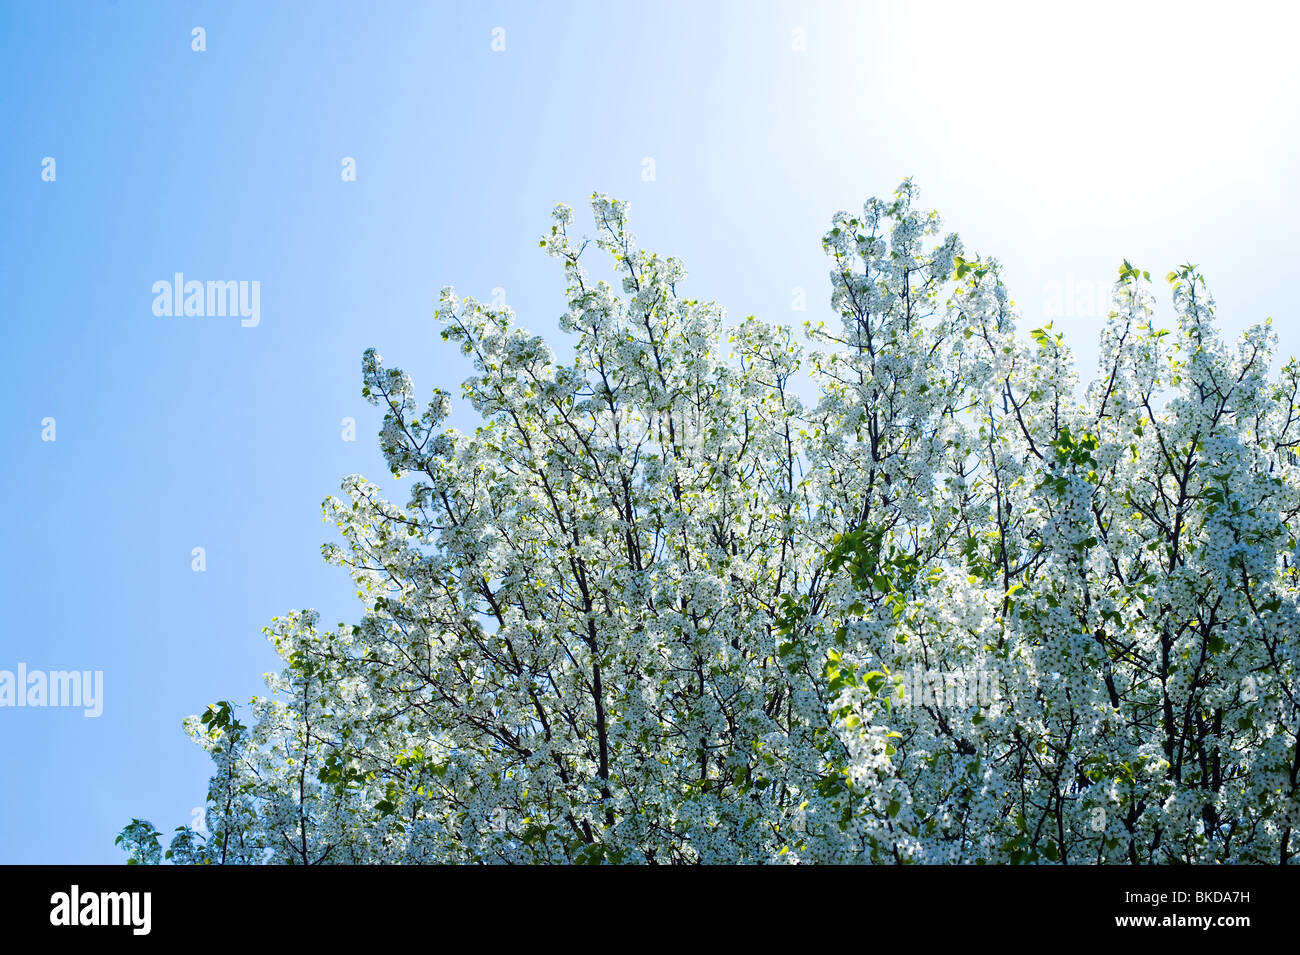 Upward view of a blossoming crabapple tree in spring - Stock Image